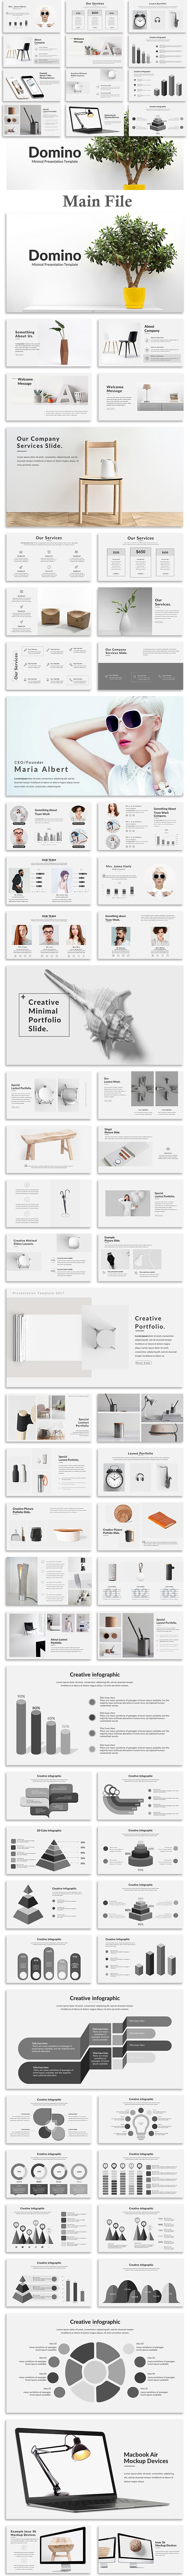 Domino - Minimal Google Slide Template - Google Slides Presentation Templates